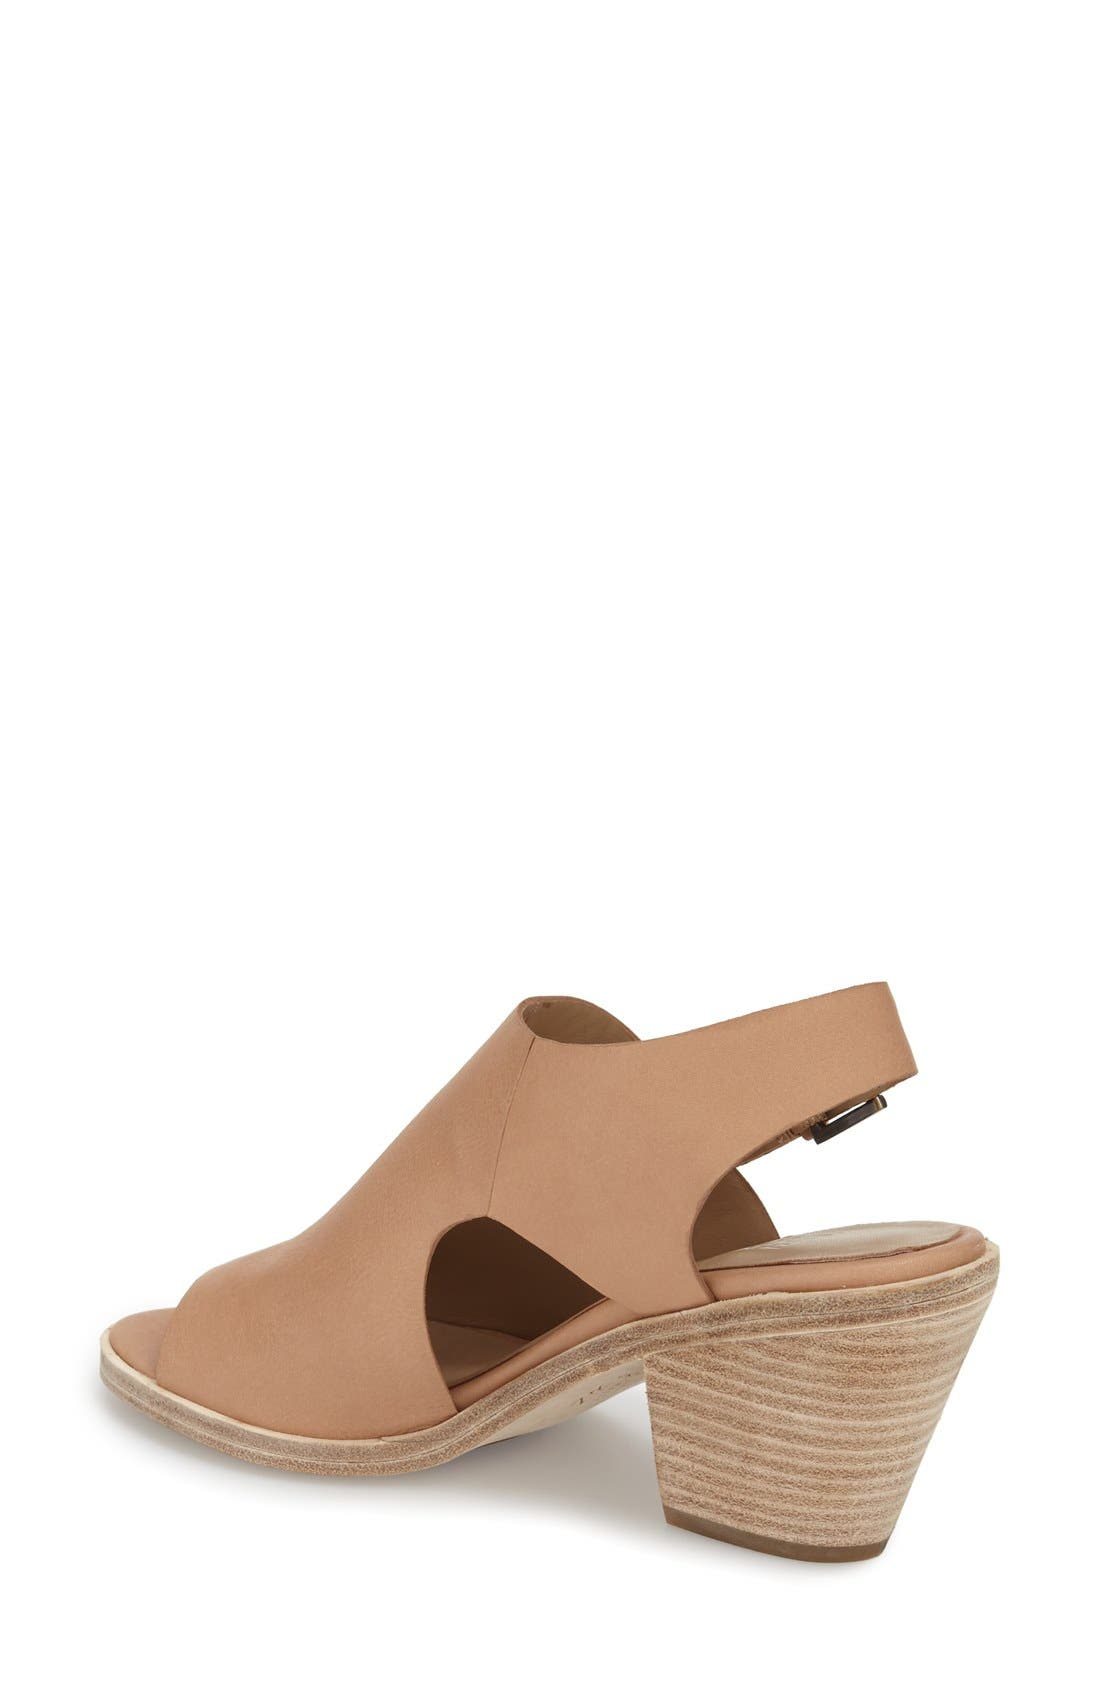 Alternate Image 2  - Eileen Fisher 'Glance' Sandal (Women)